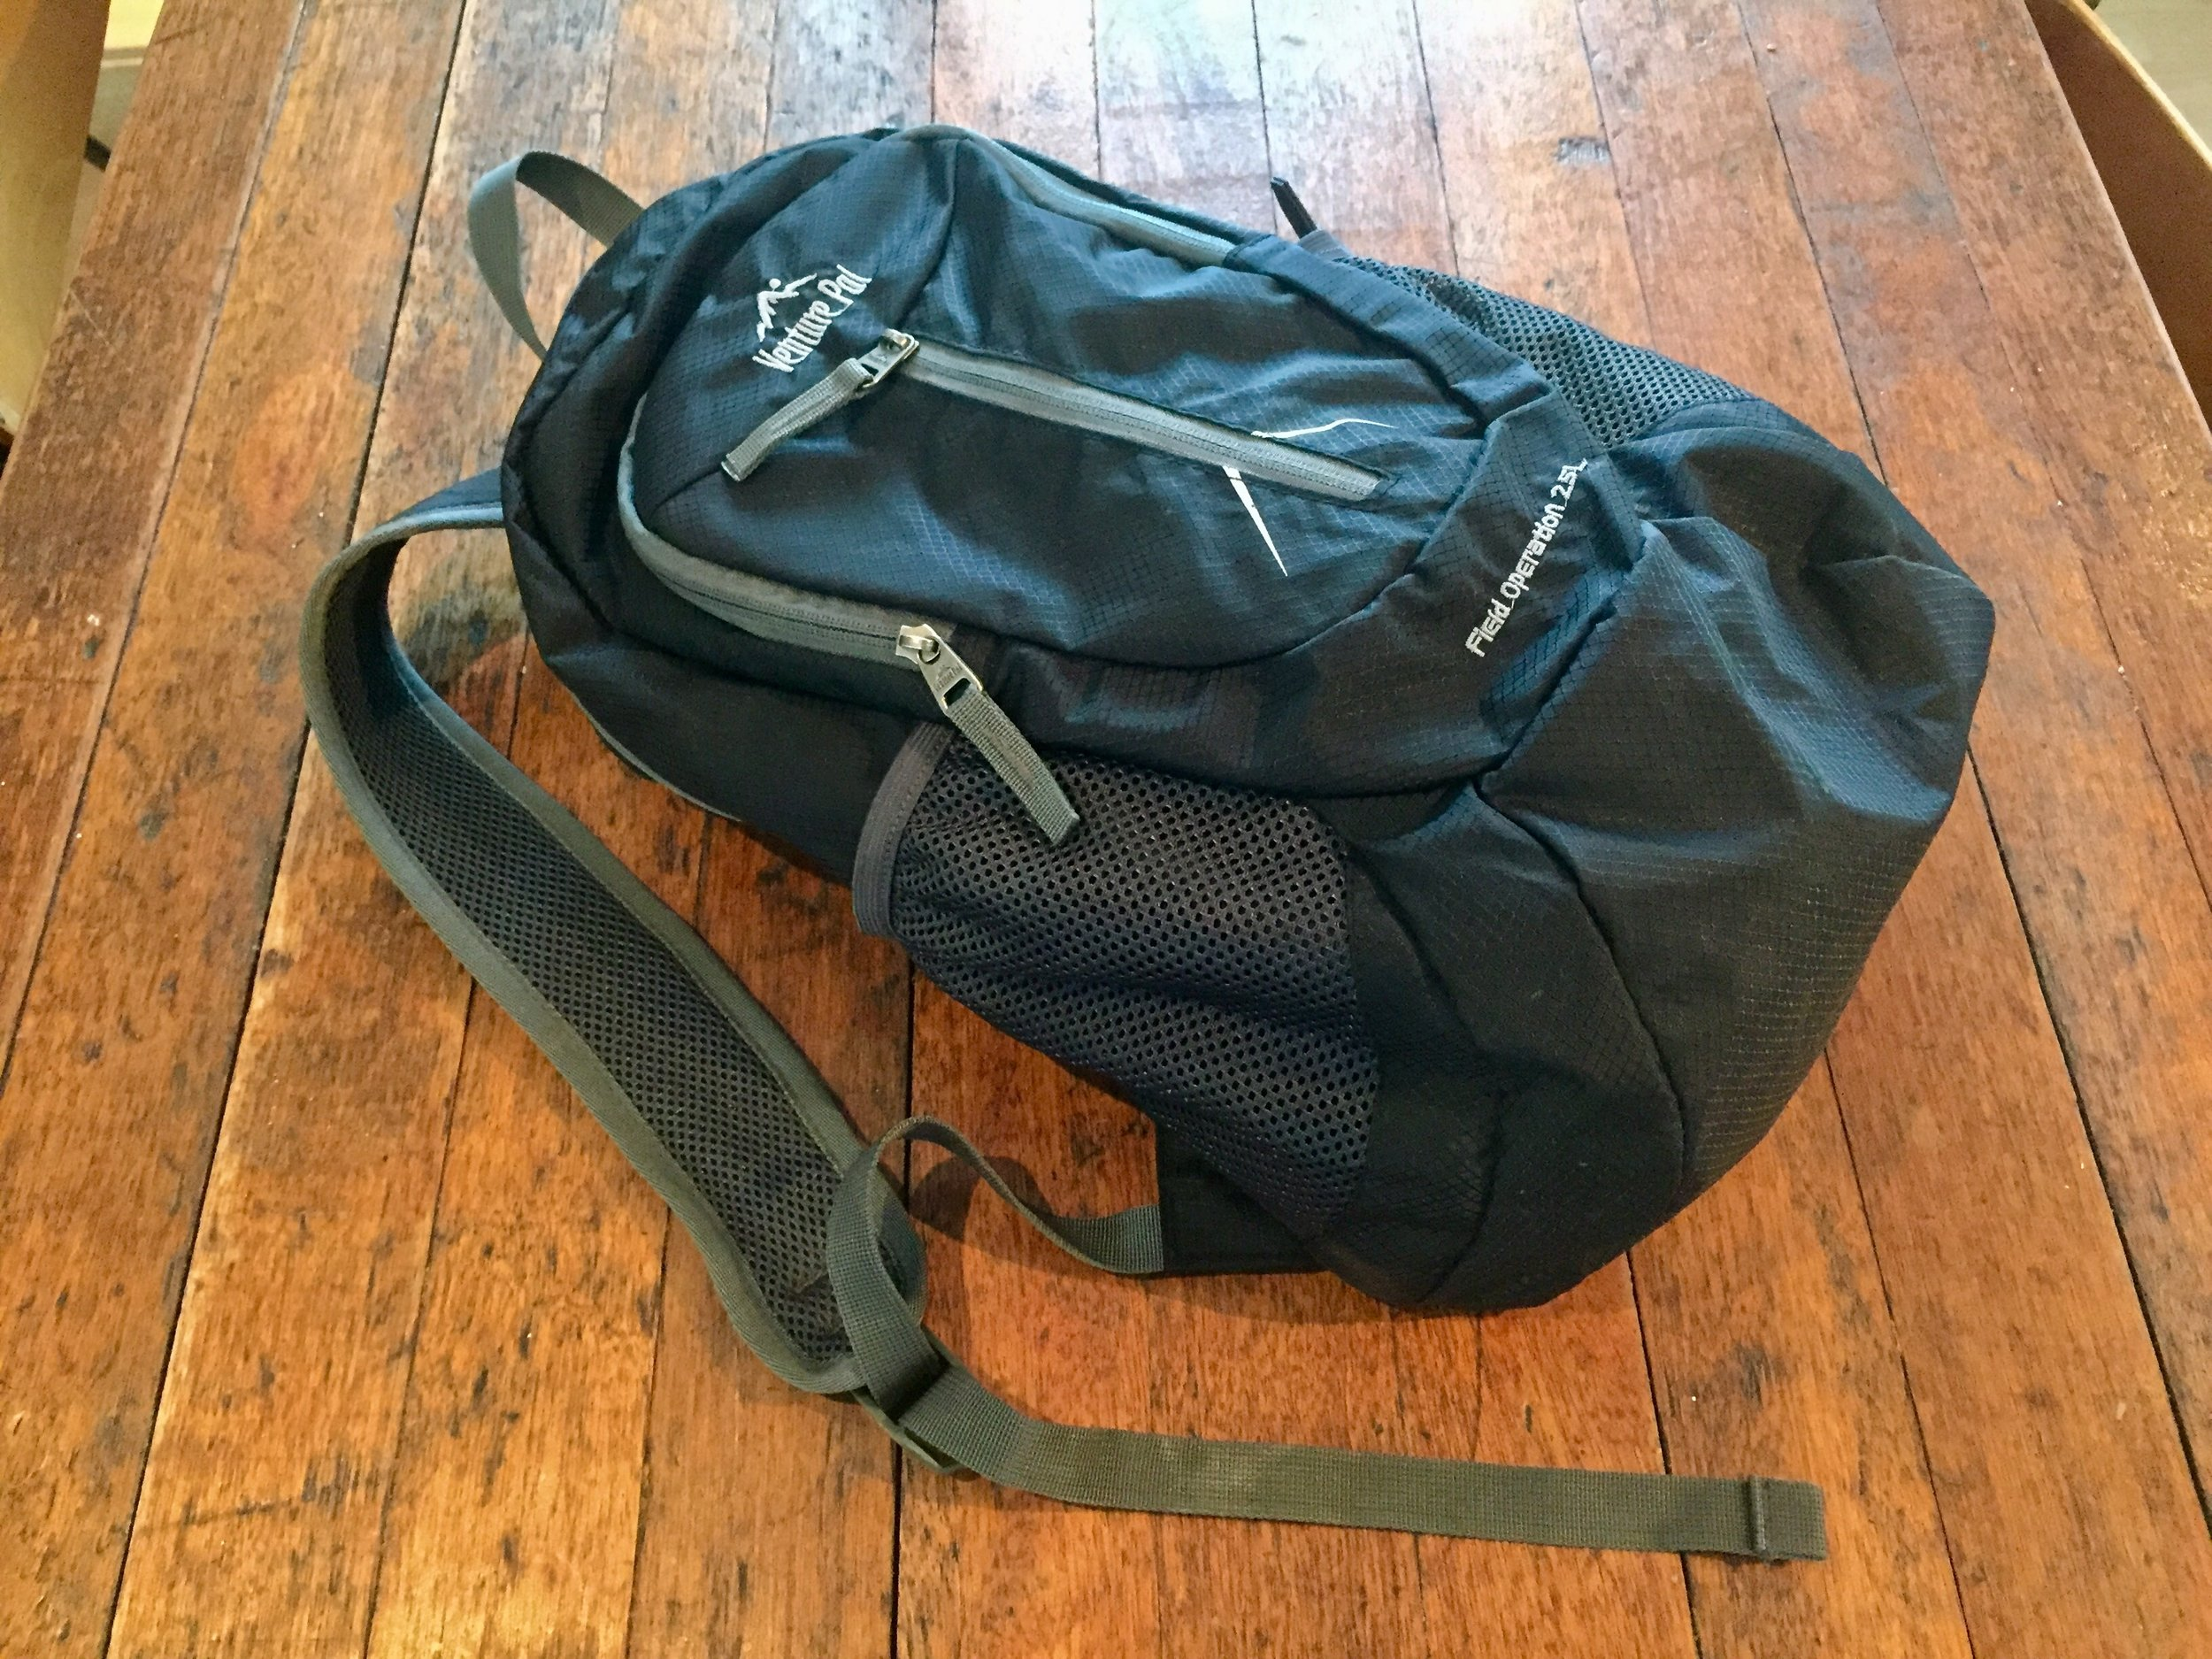 Venture pal lightweight backpack